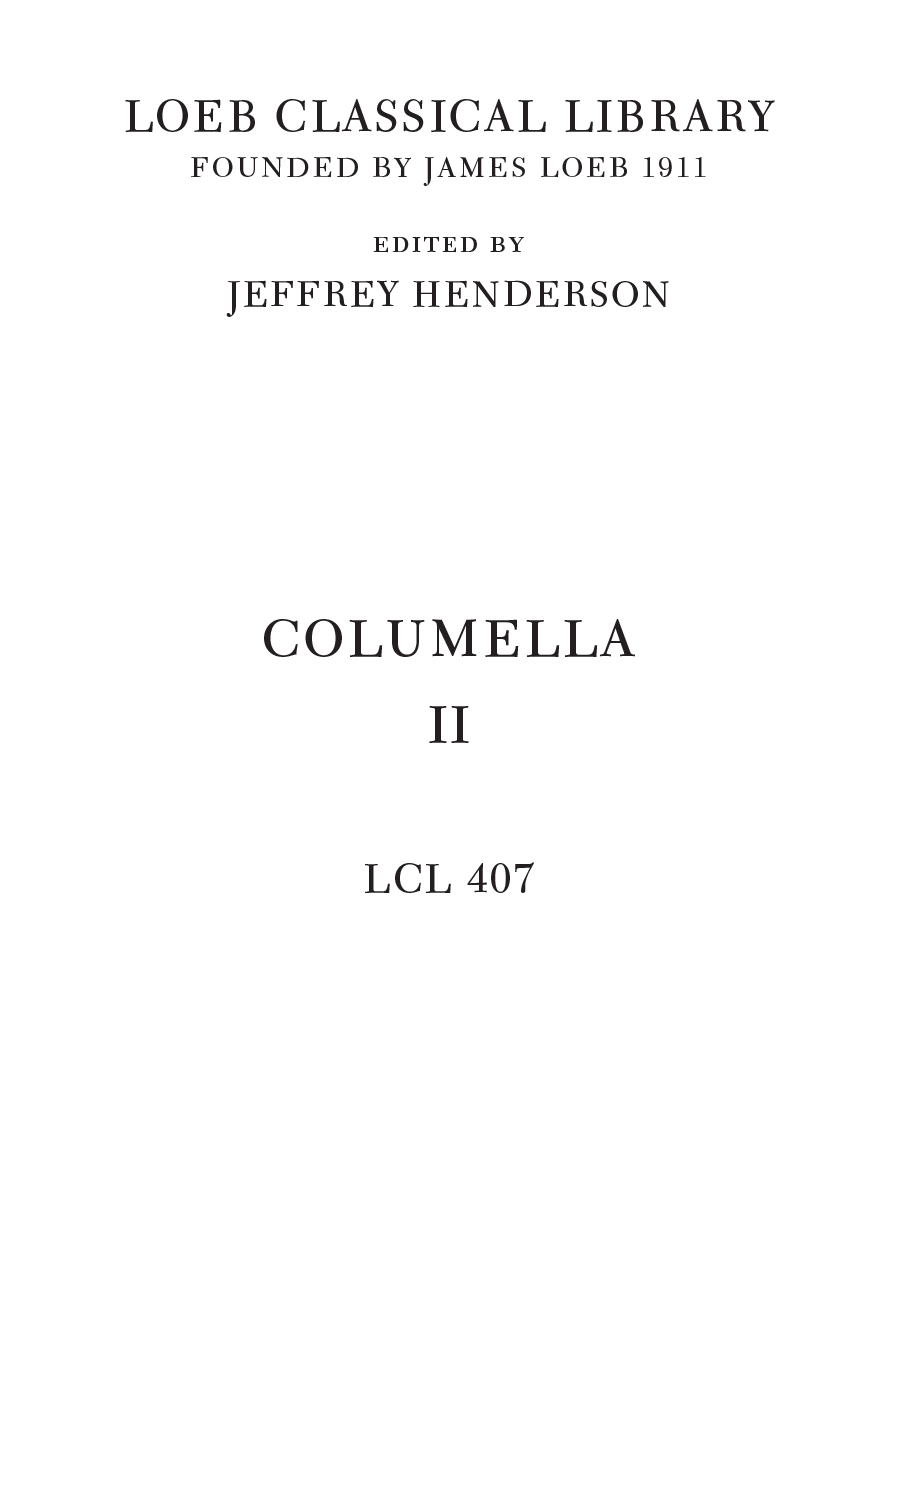 LOEB CLASSICAL LIBRARY FOUNDED BY JAMES LOEB 1911 edited by JEFFREY HENDERSON COLUMELLA II LCL 407